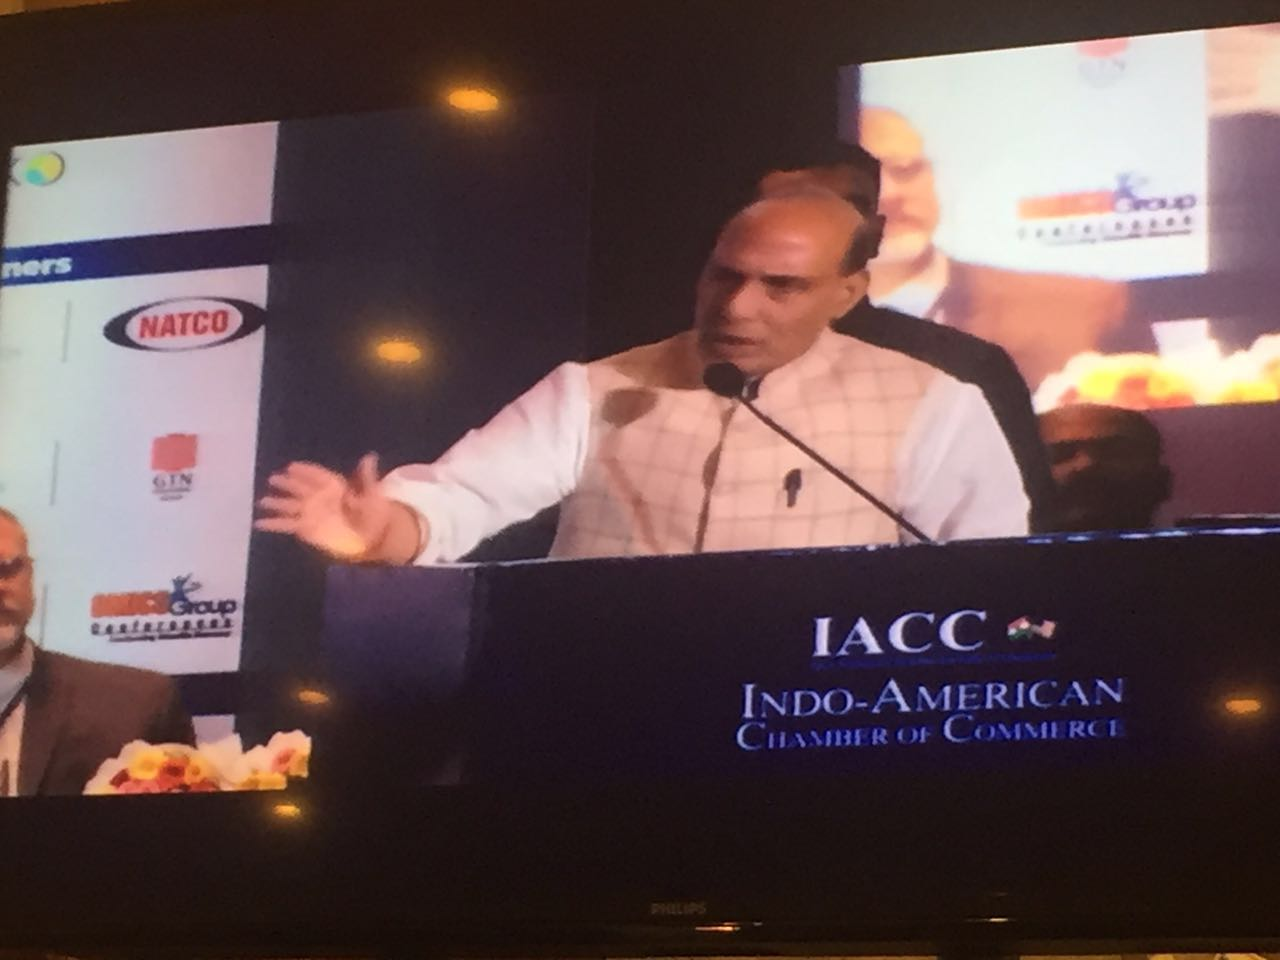 2016 Home-Minister Rajanth Singh at IndoAmerican Chamber of Commerce